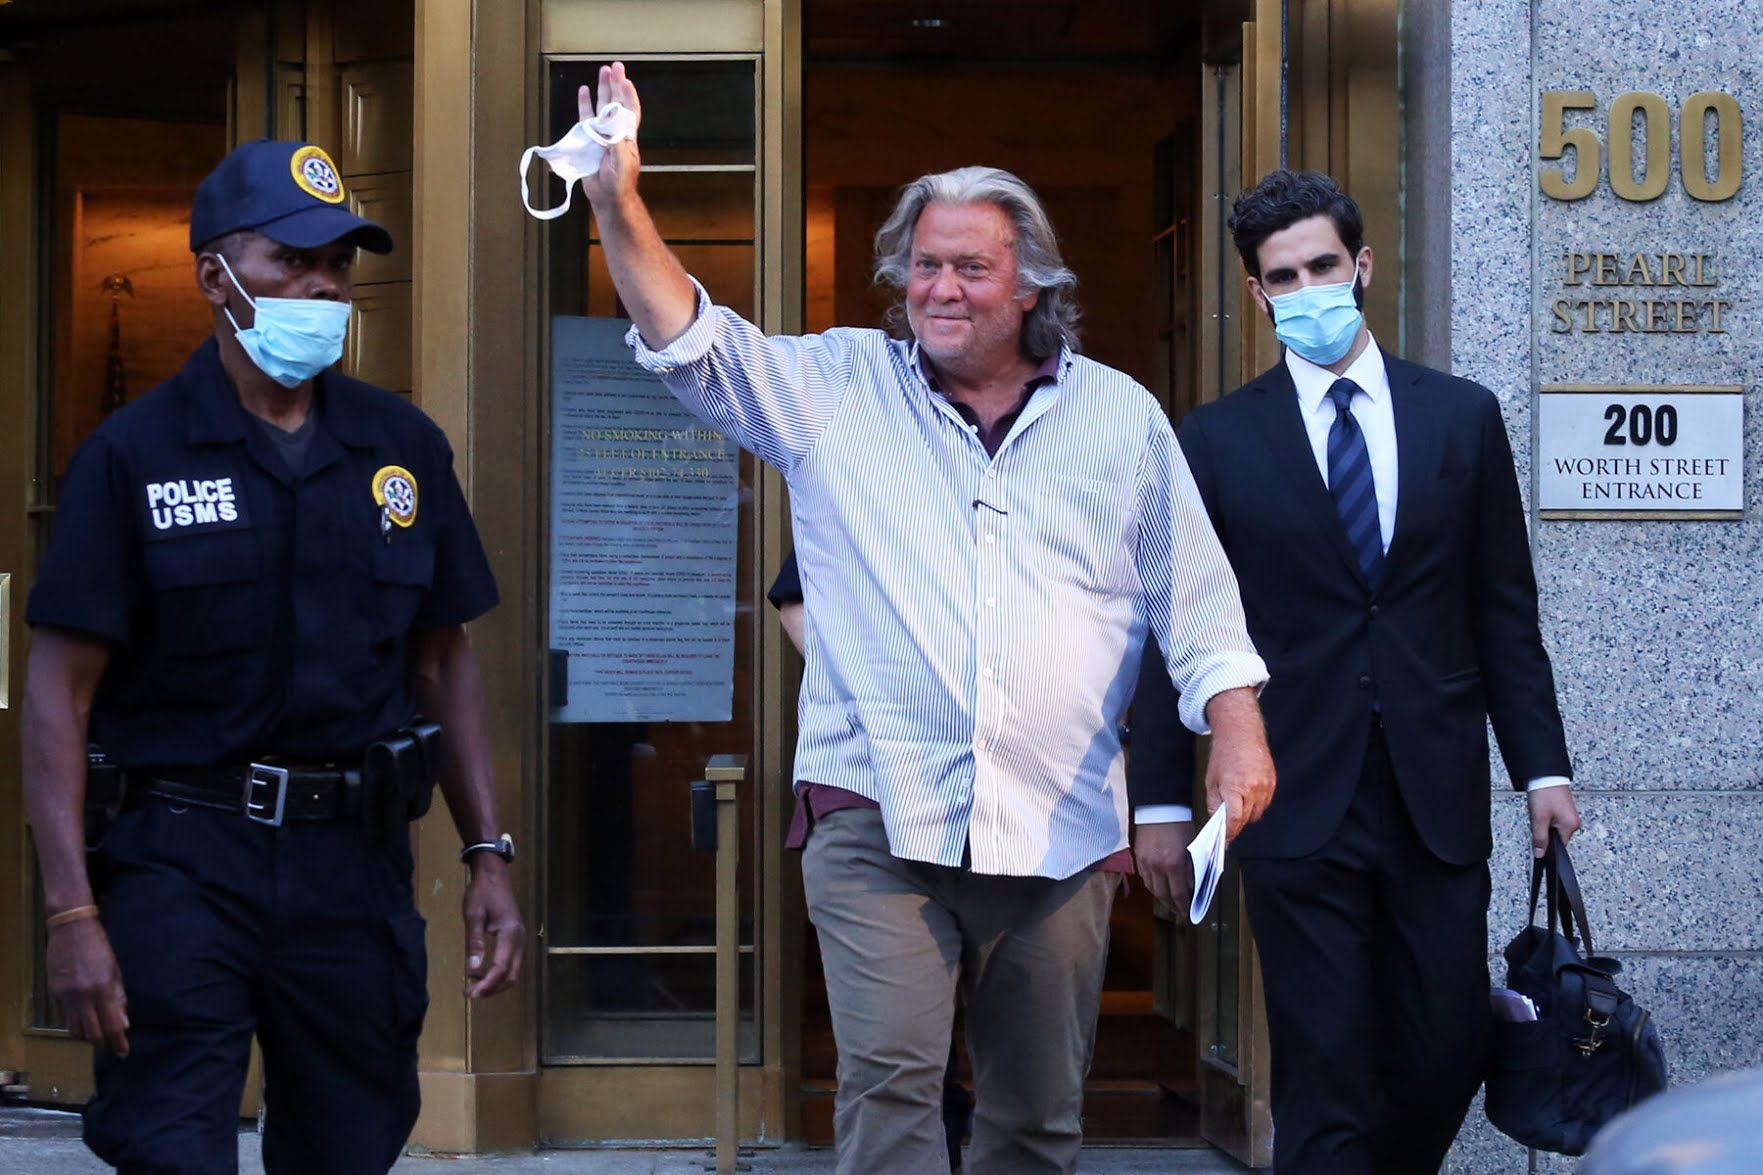 Stephen K. Bannon, the former White House chief strategist, leaving Federal District Court in Manhattan on Thursday afternoon.